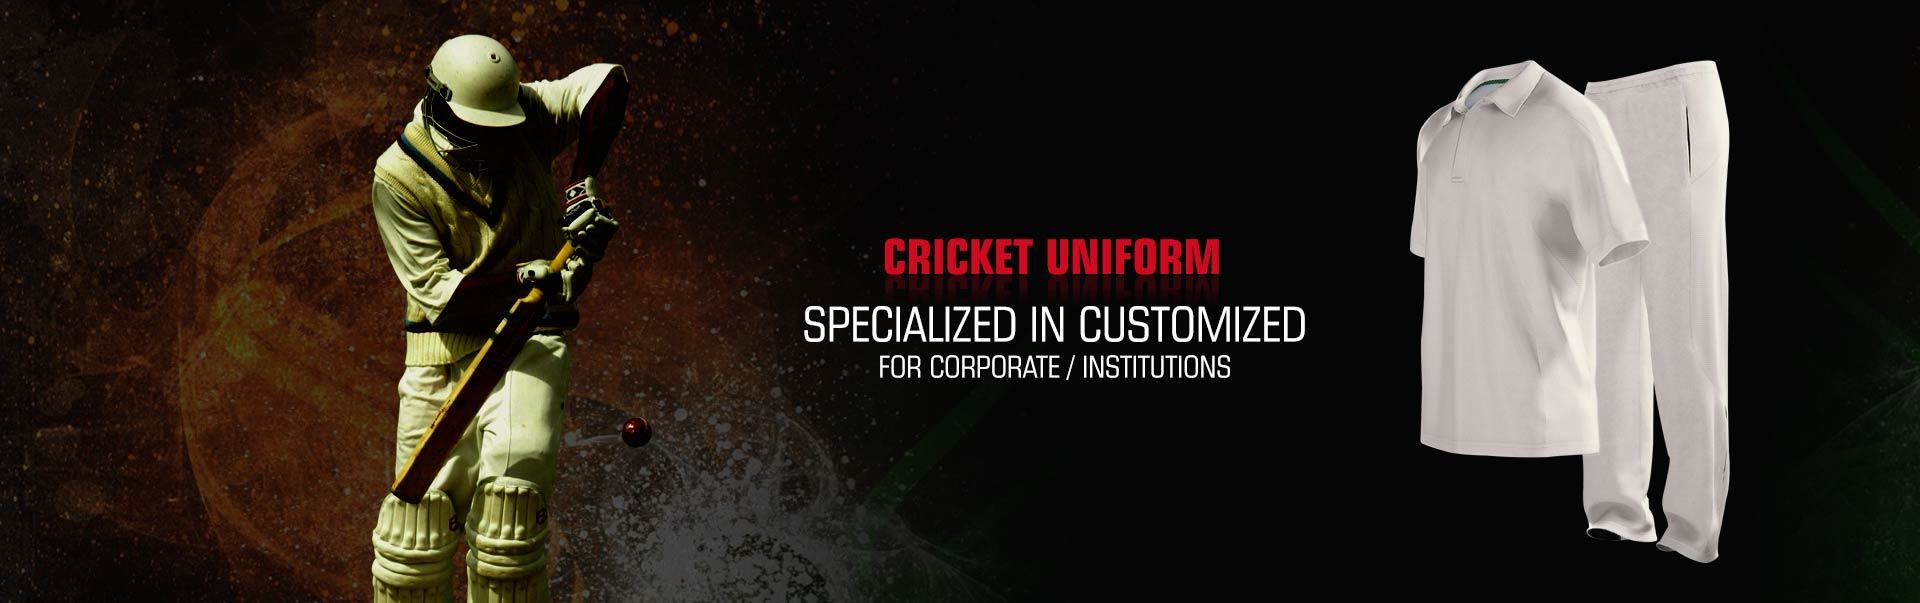 Cricket Uniform Wholesaler, Suppliers in Mississippi Mills